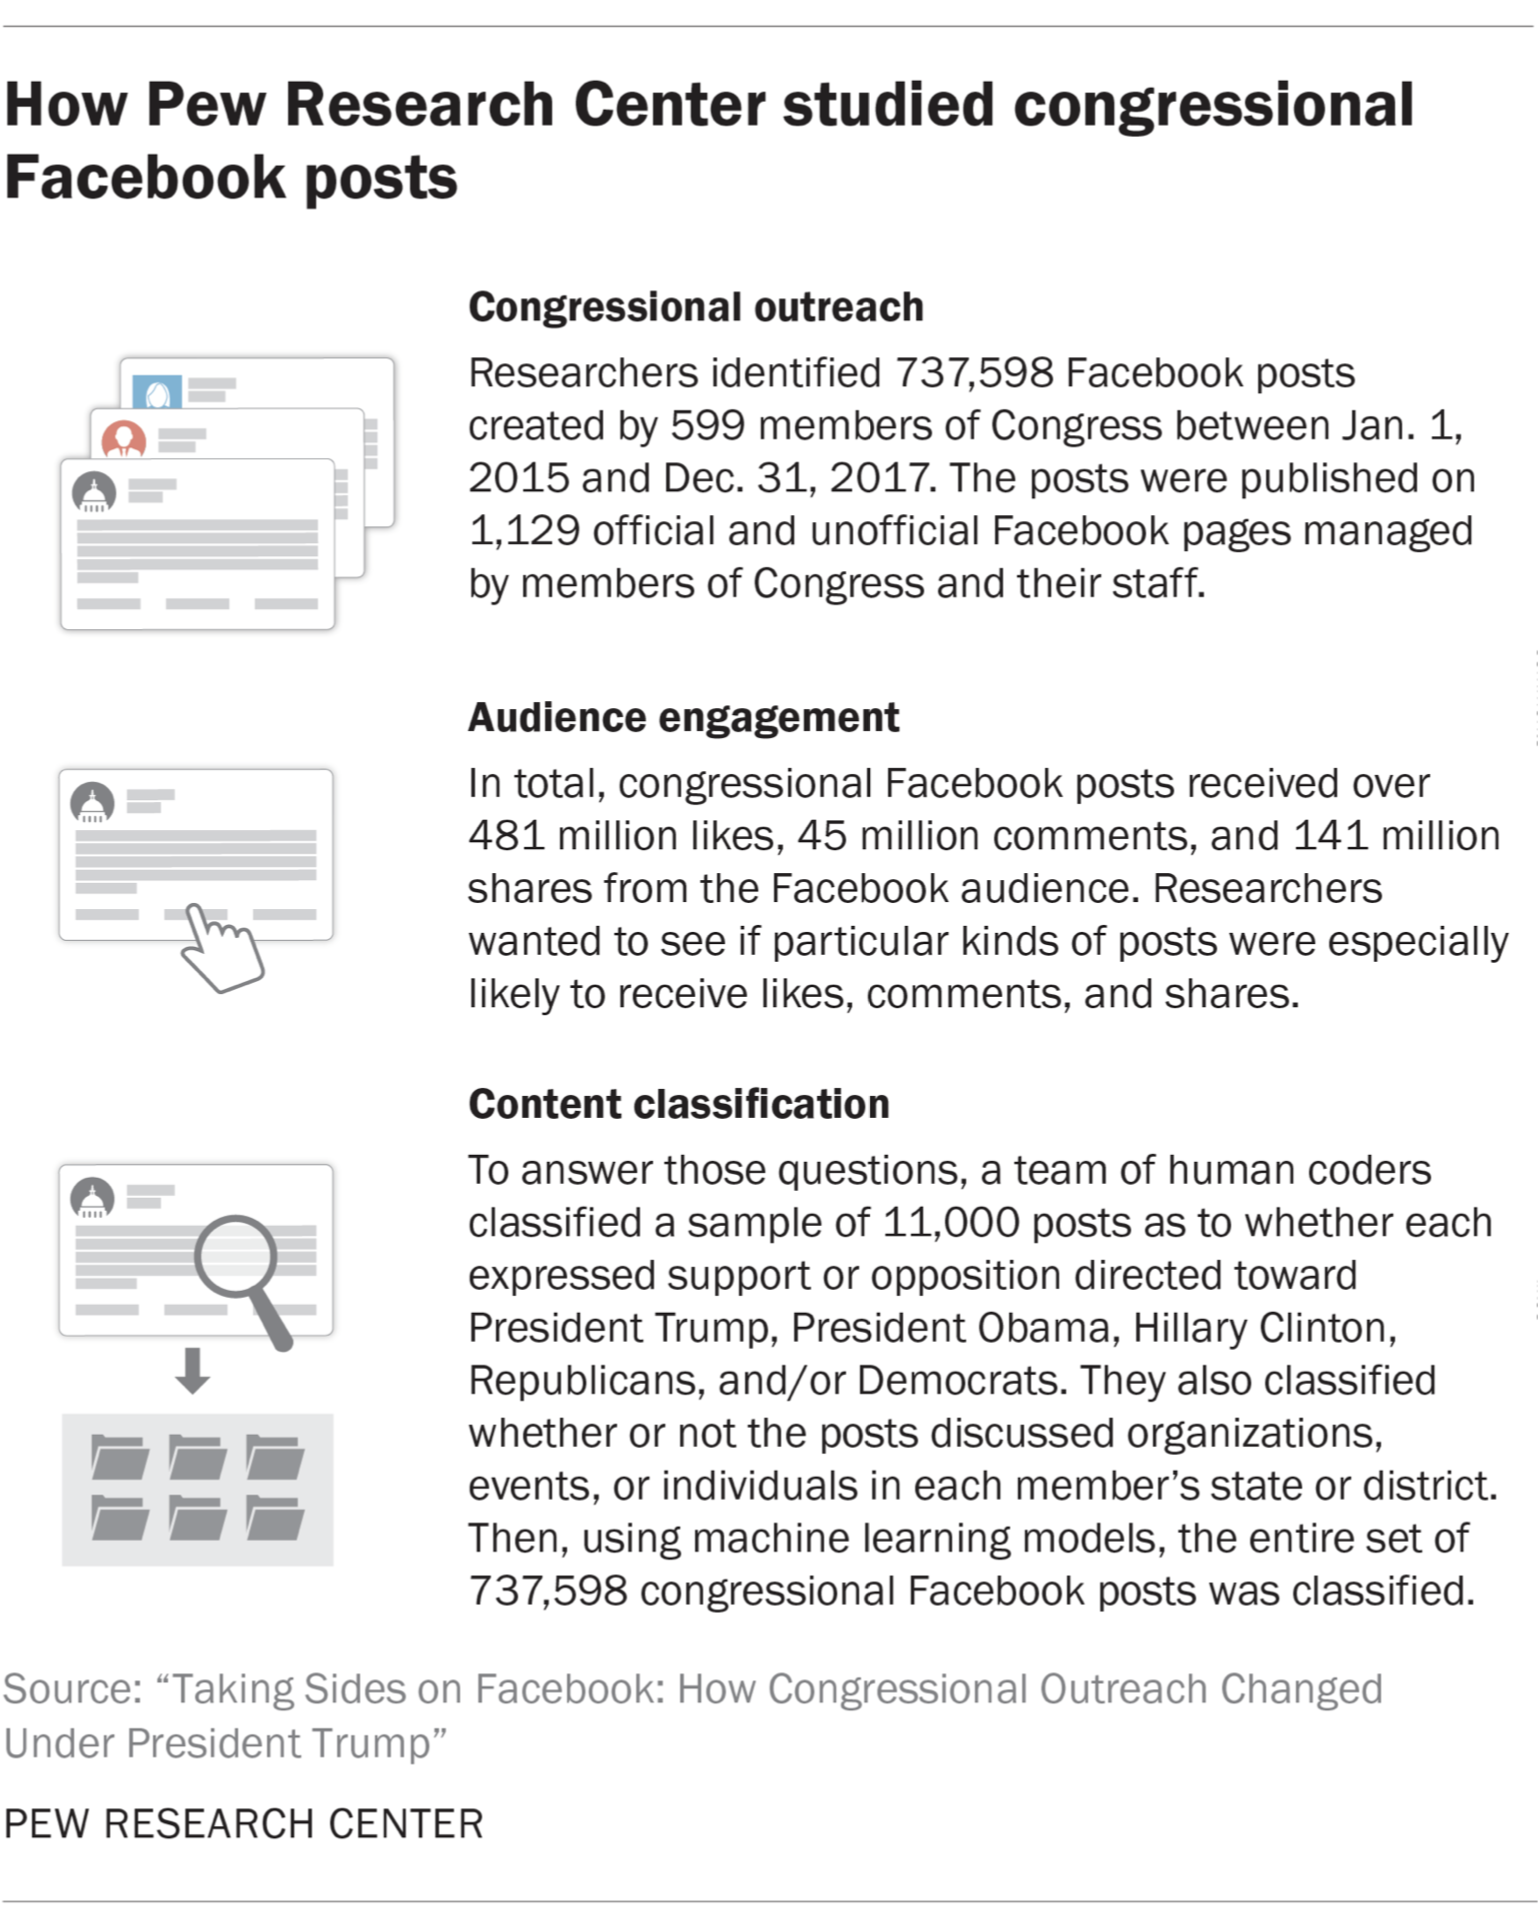 How Pew Research Center studied congressional Facebook posts